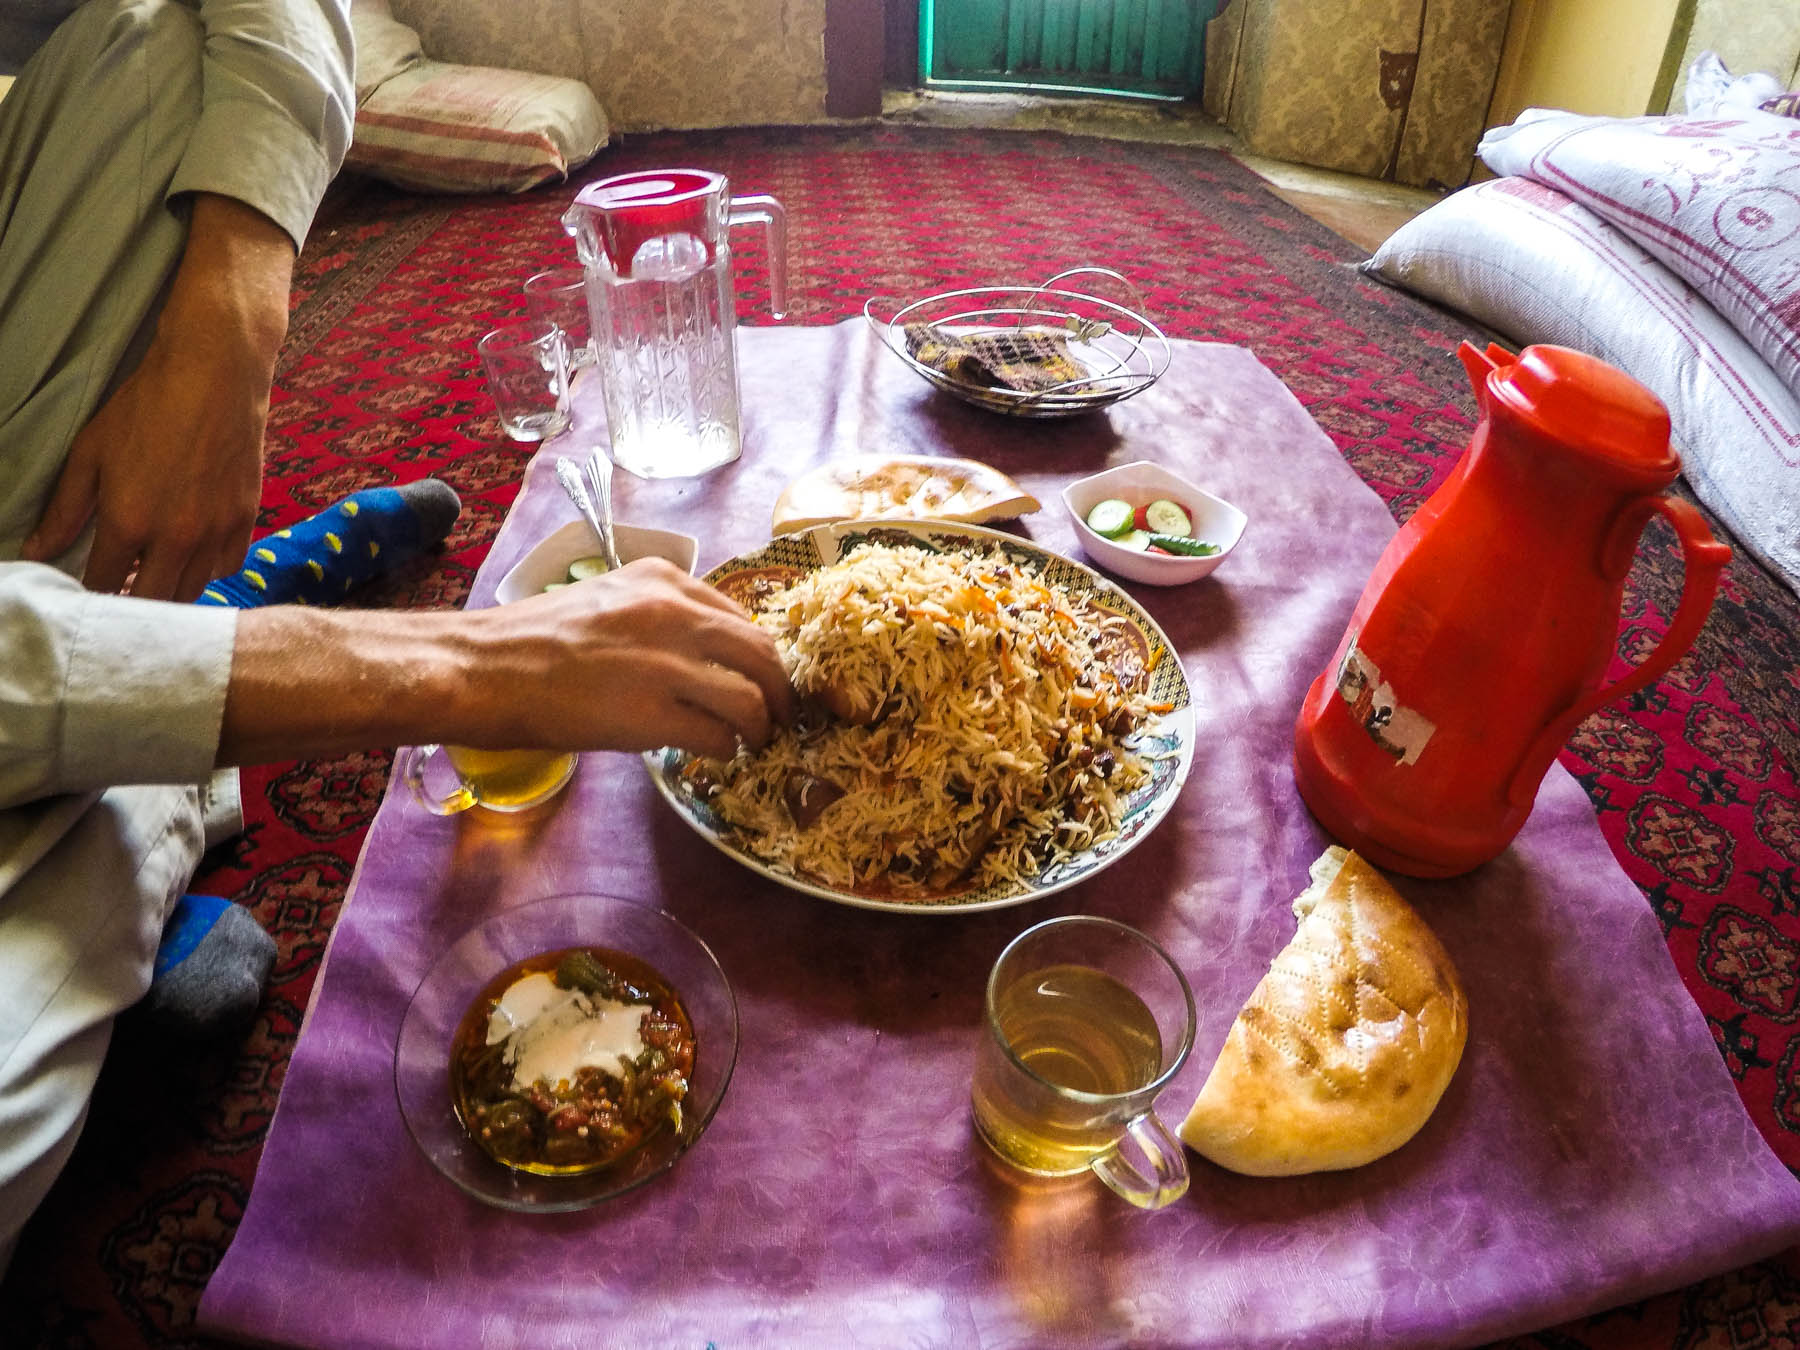 Kabuli pulao in Mazar-i-Sharif, Afghanistan - Lost With Purpose